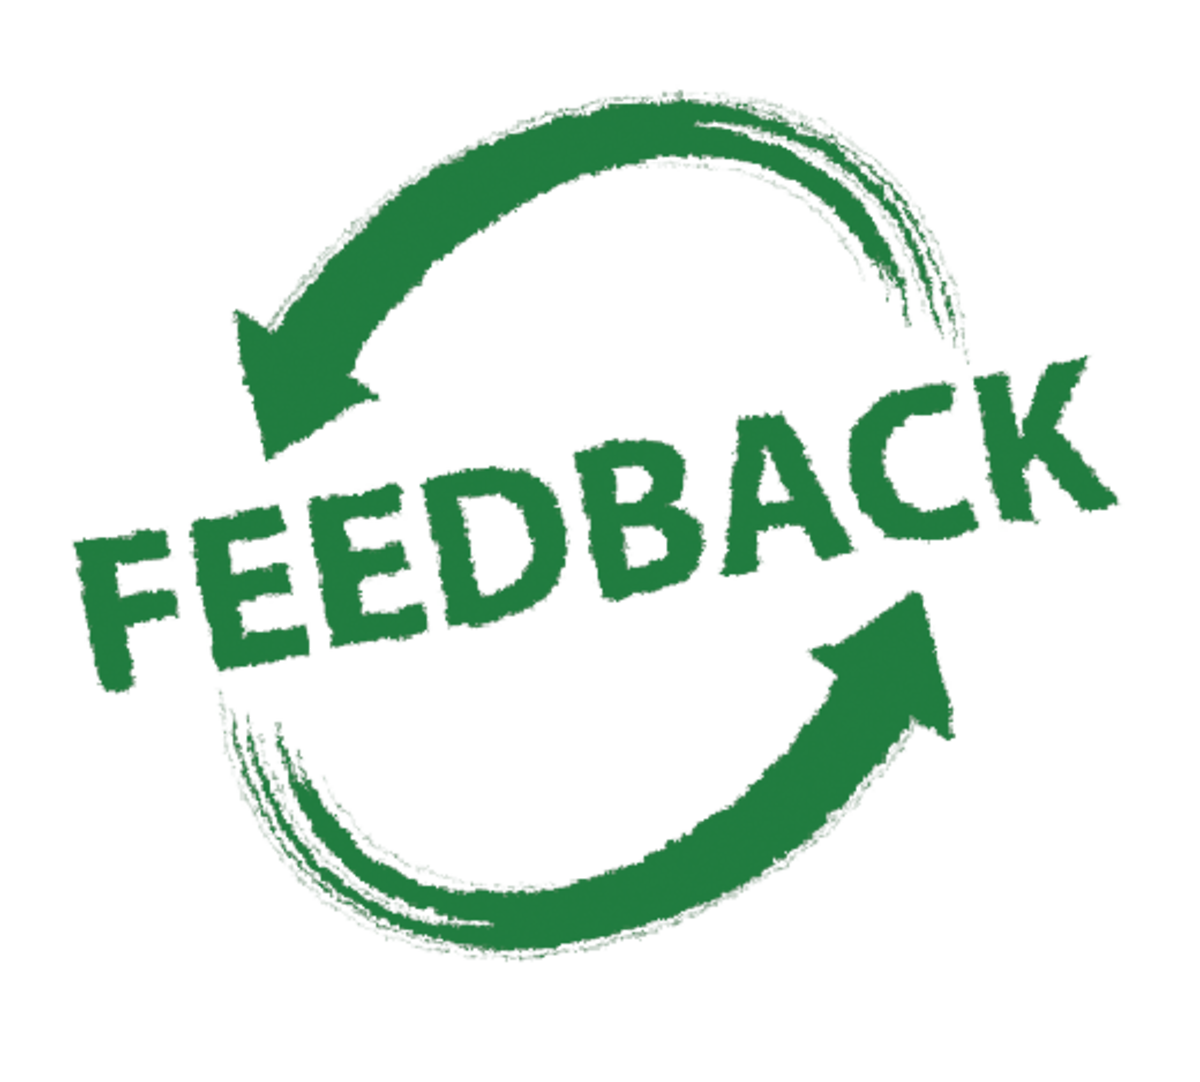 Giving and Receiving Feedback (NVQ Business and Administration)